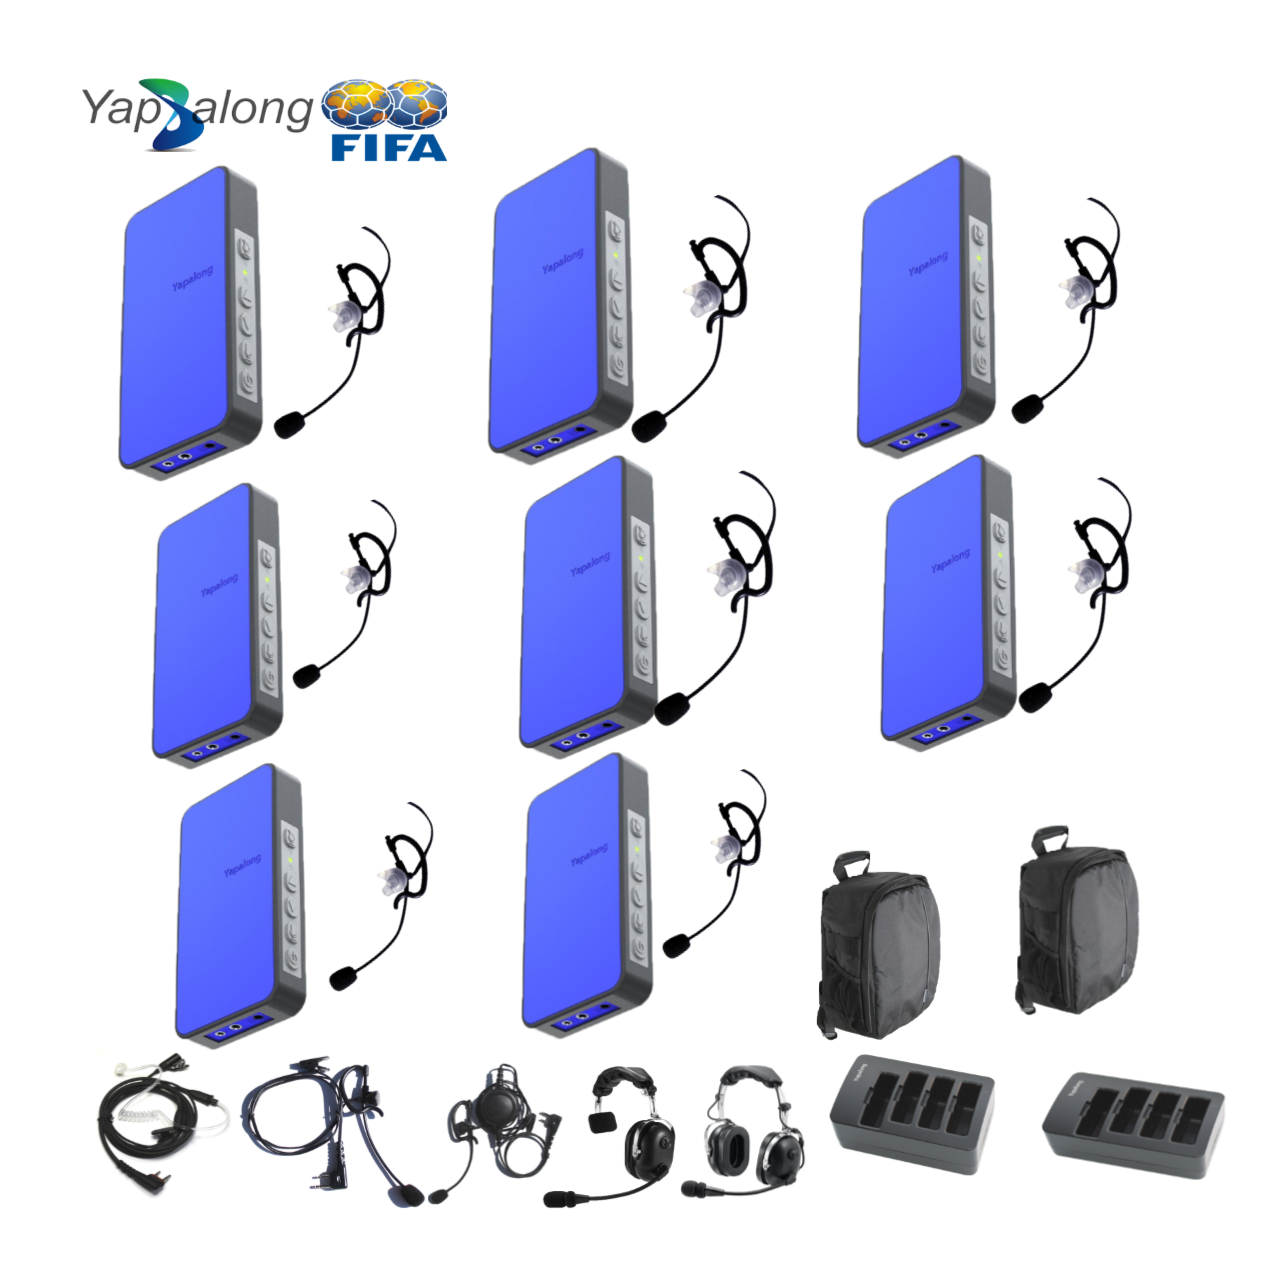 Yapalong 5000 (8-User) Complete Set Intercom Systems Intercom Systems